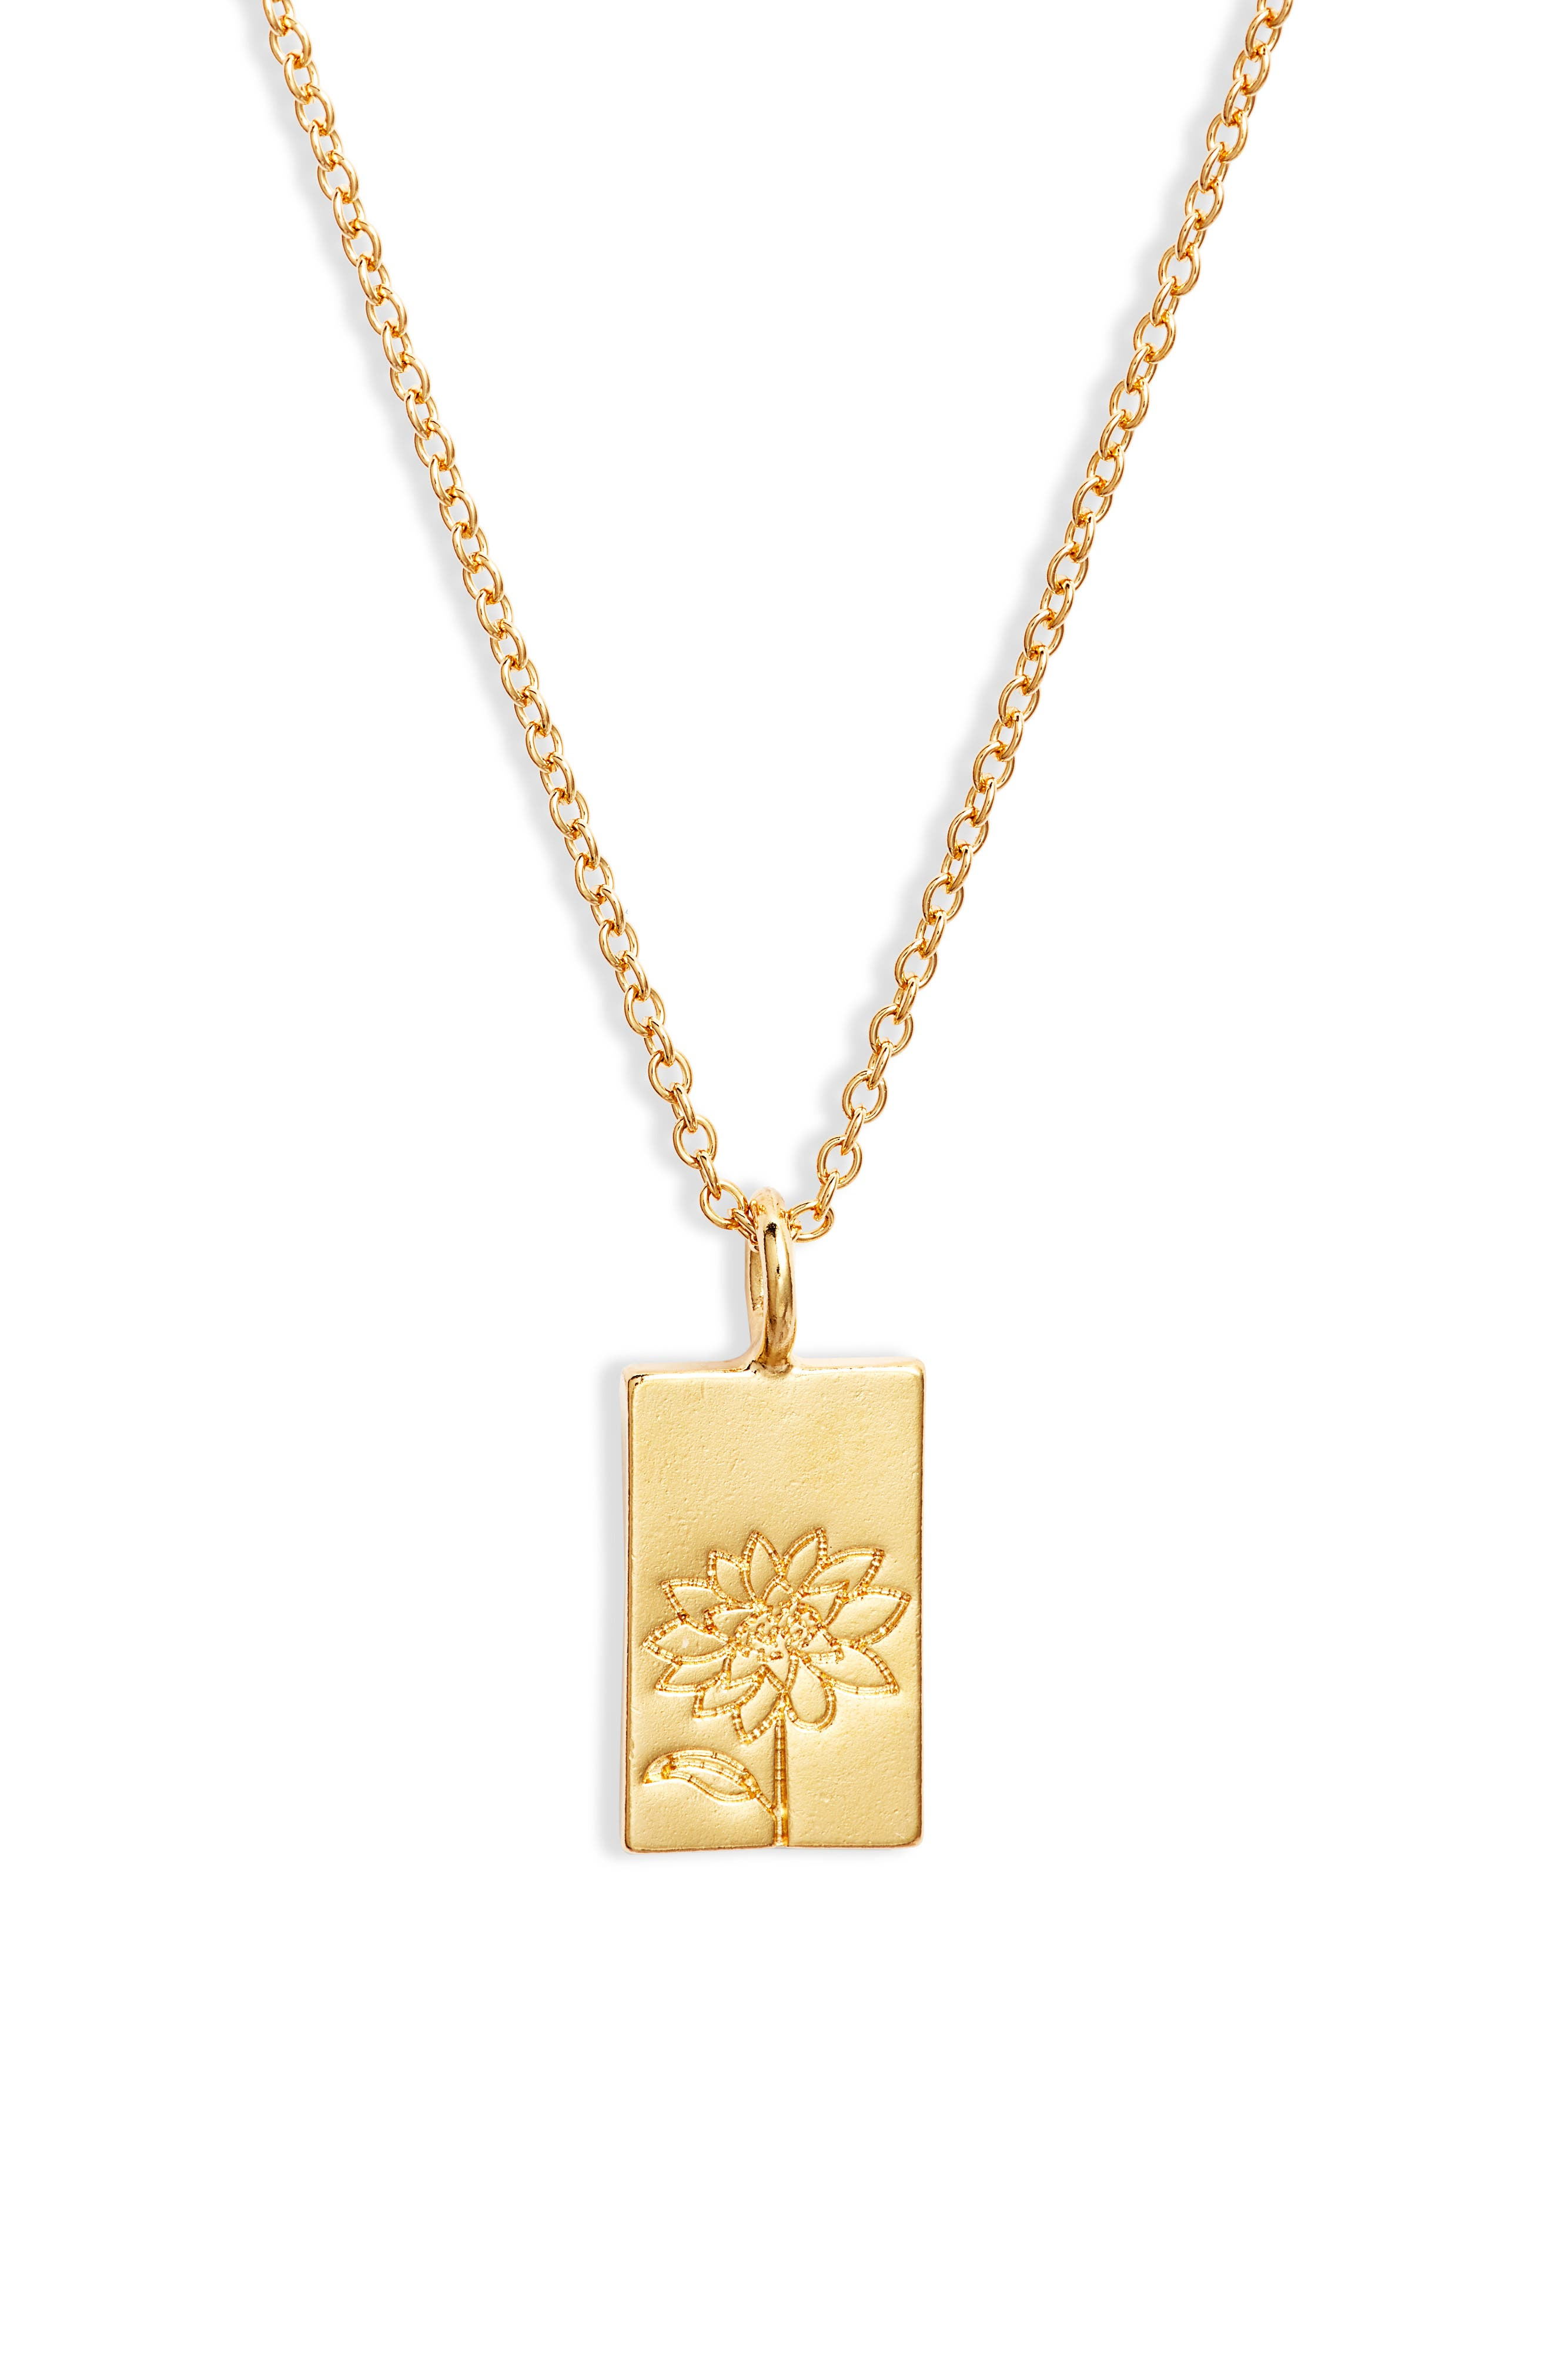 Chasing Light Pendant Necklace in 14K Gold at Nordstrom